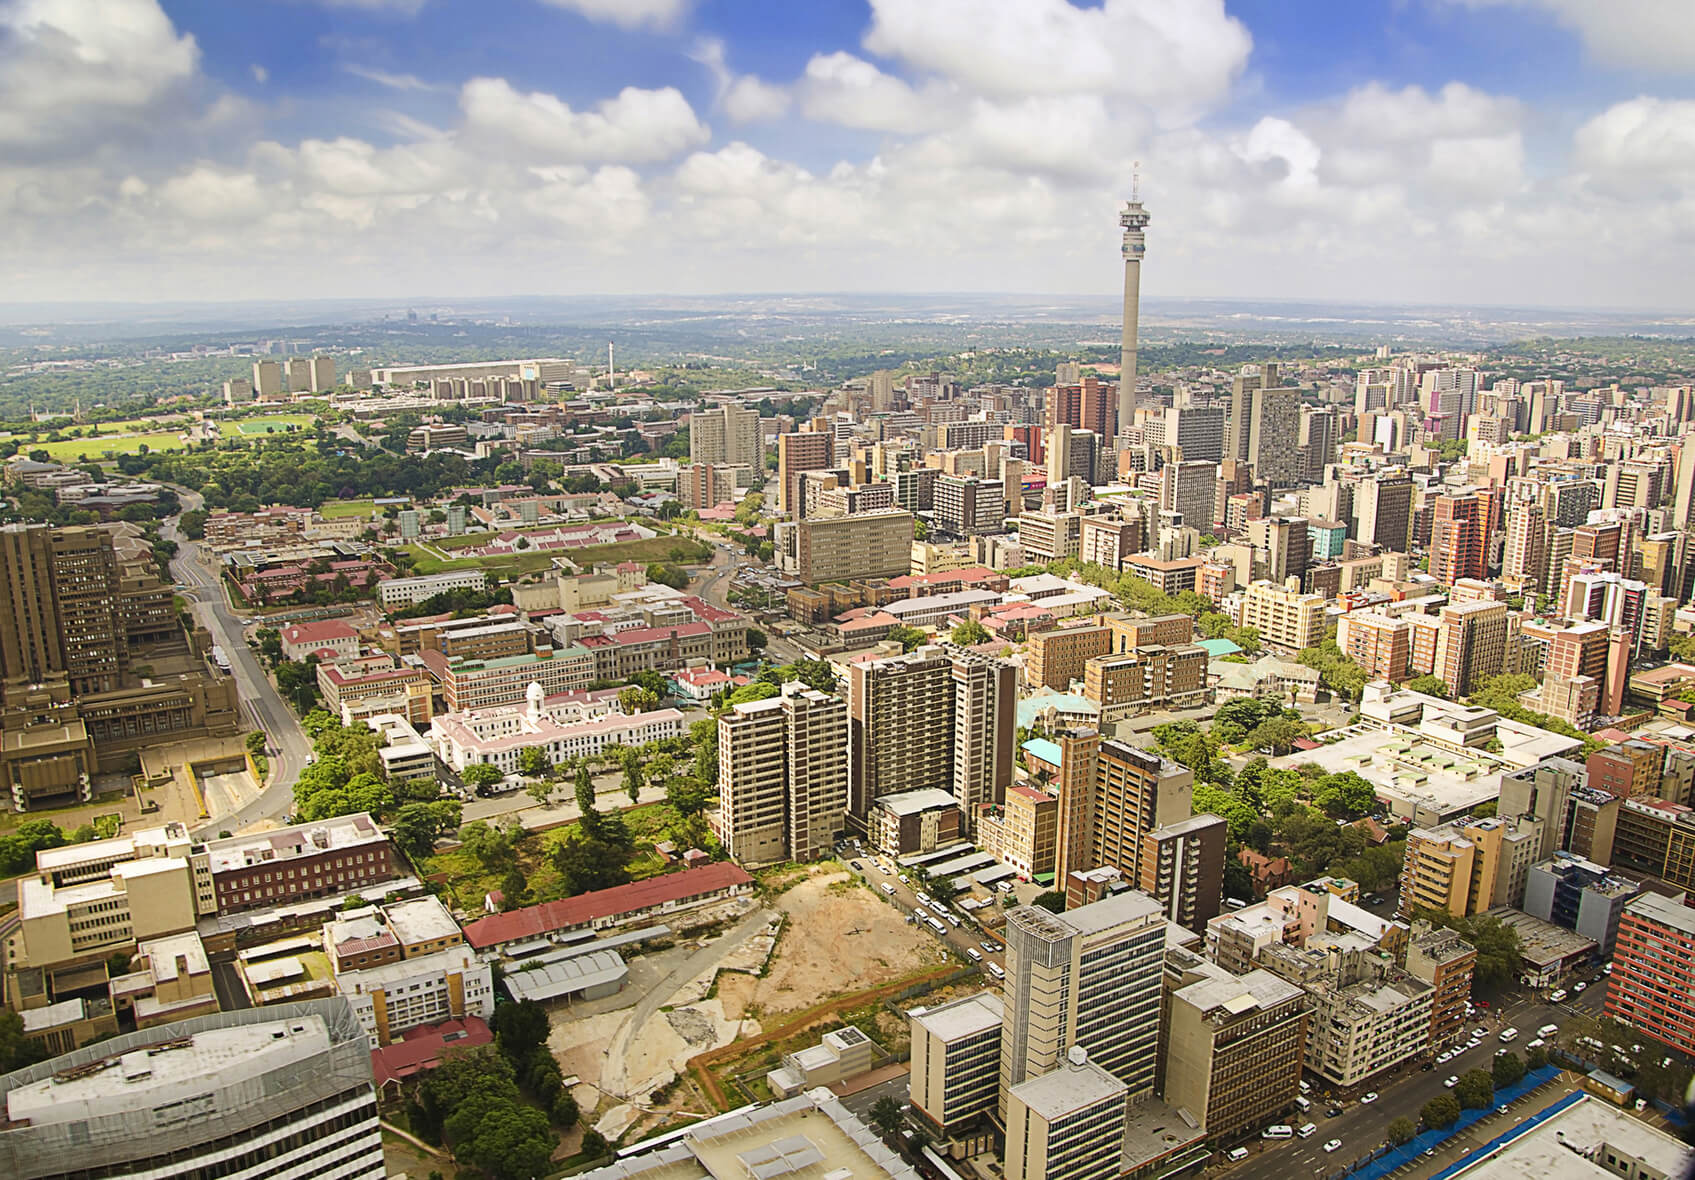 Tel Aviv, Israel to Johannesburg, South Africa for only $318 USD roundtrip (Oct-Apr dates)